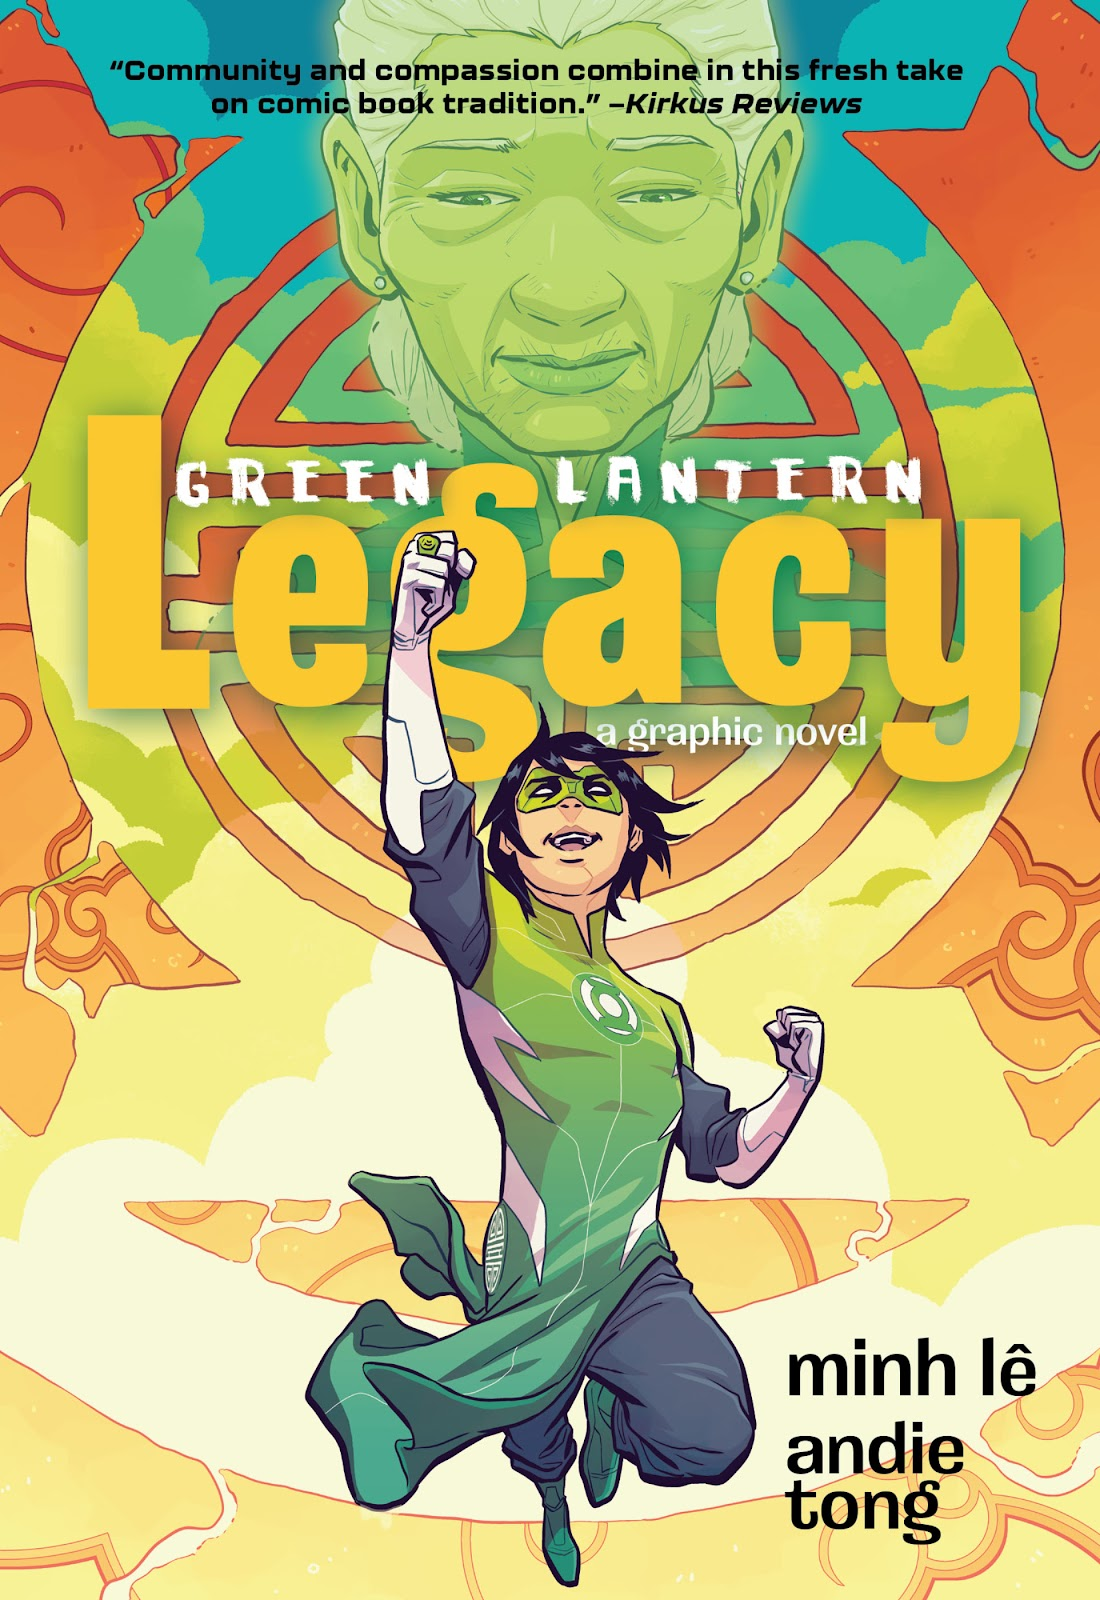 Read online Green Lantern: Legacy comic -  Issue # TPB - 1